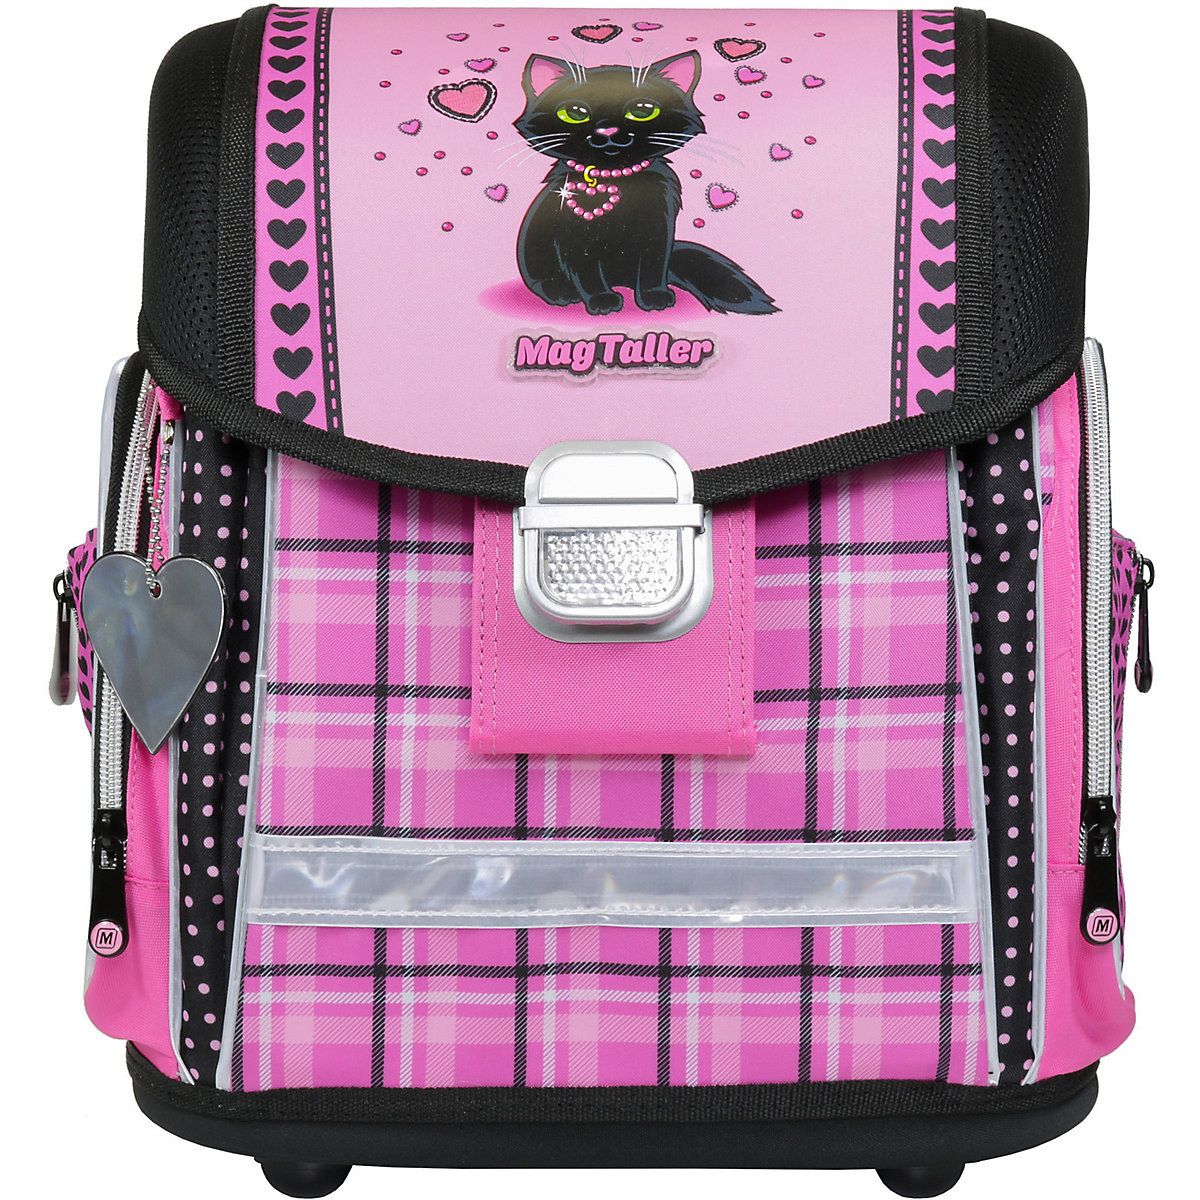 School Bags MAGTALLER 11154954 schoolbag backpack knapsacks orthopedic bag for boy and girl animals flower sprints school bags magtaller 11154976 schoolbag backpack knapsacks orthopedic bag for boy and girl animals flower sprints